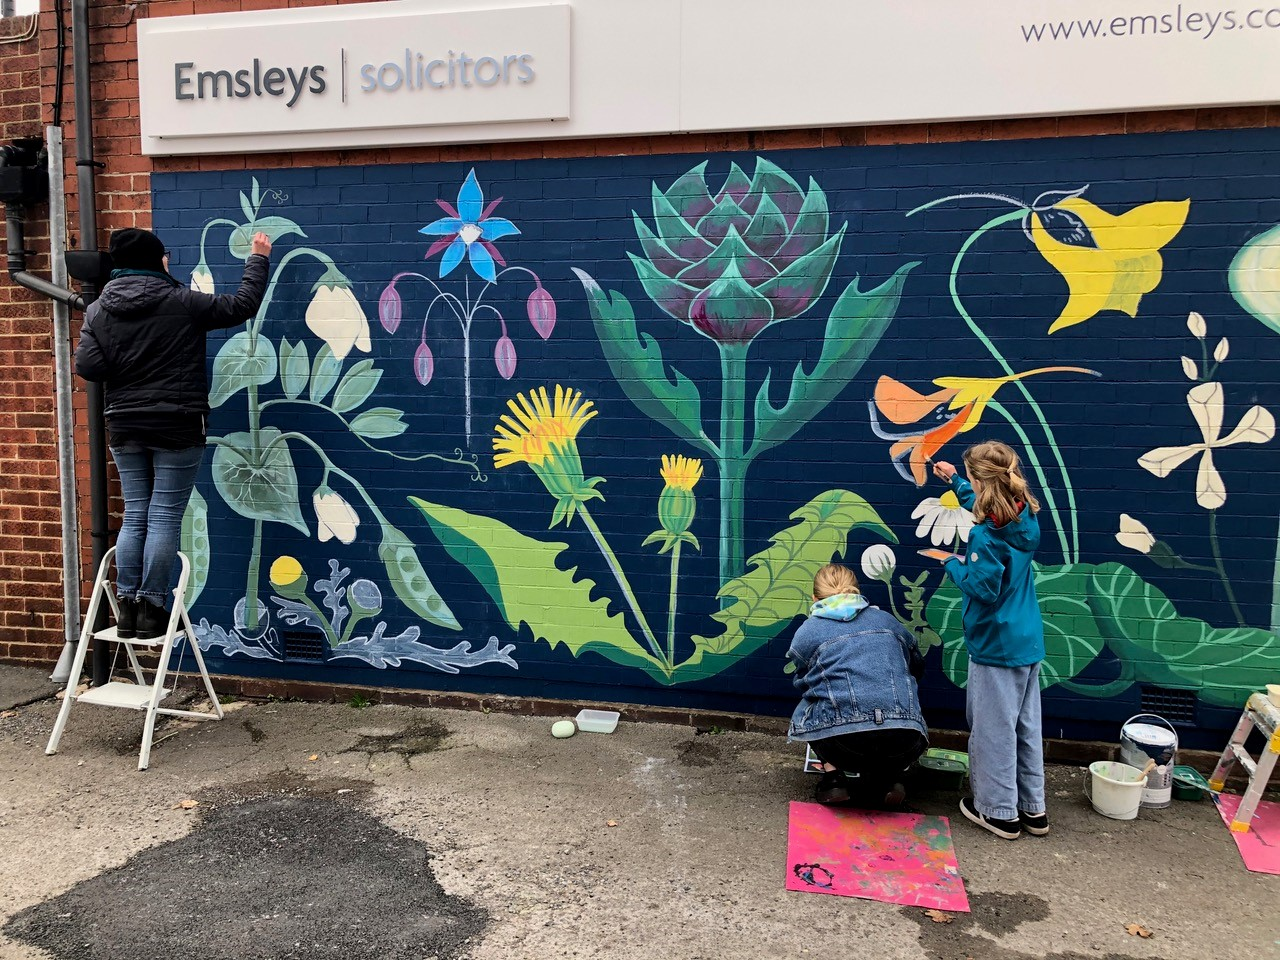 A family helping to paint the mural